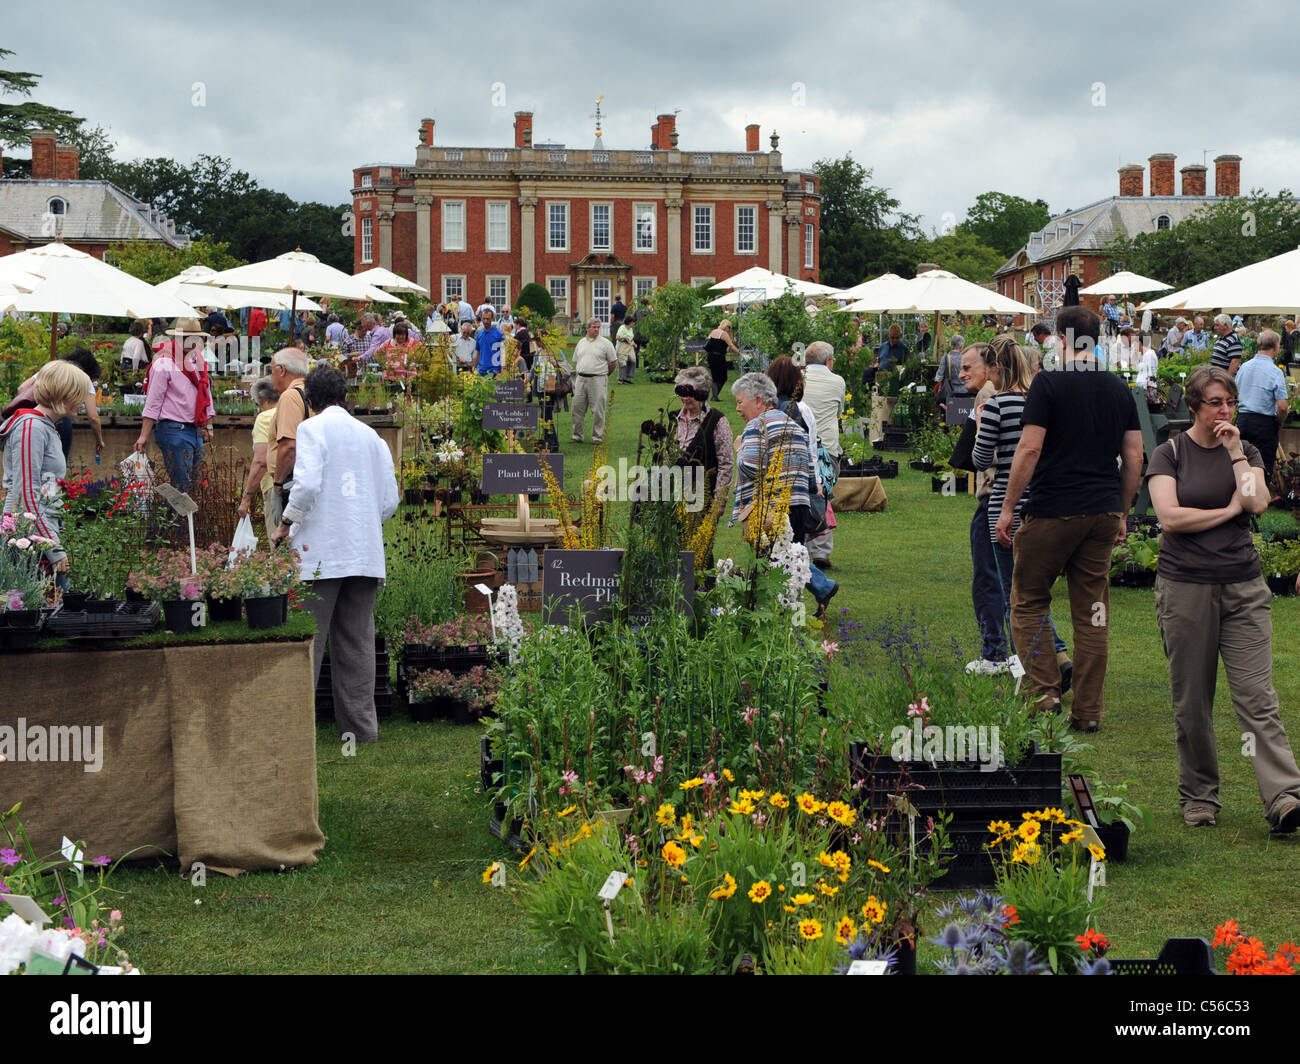 The Daily Telelgraph Plant Finders Fair at Cottesbrooke Hall, Northampton. - Stock Image